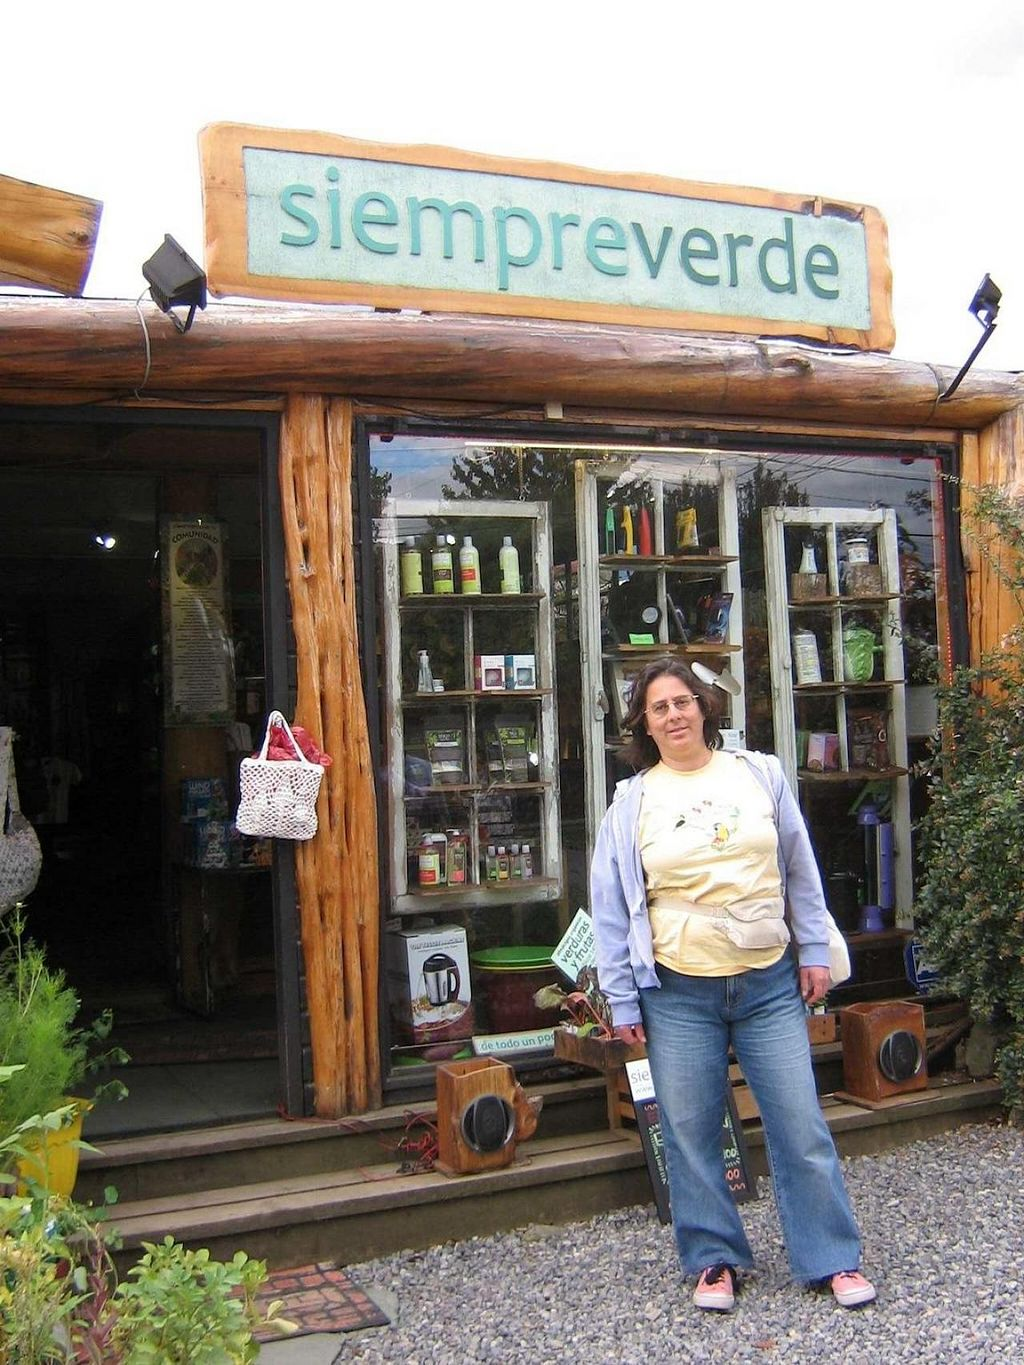 Photo of siempreverde  by jessica-f <br/>Siempreverde of Pucon, Chile <br/> August 5, 2014  - <a href='/contact/abuse/image/37426/76127'>Report</a>